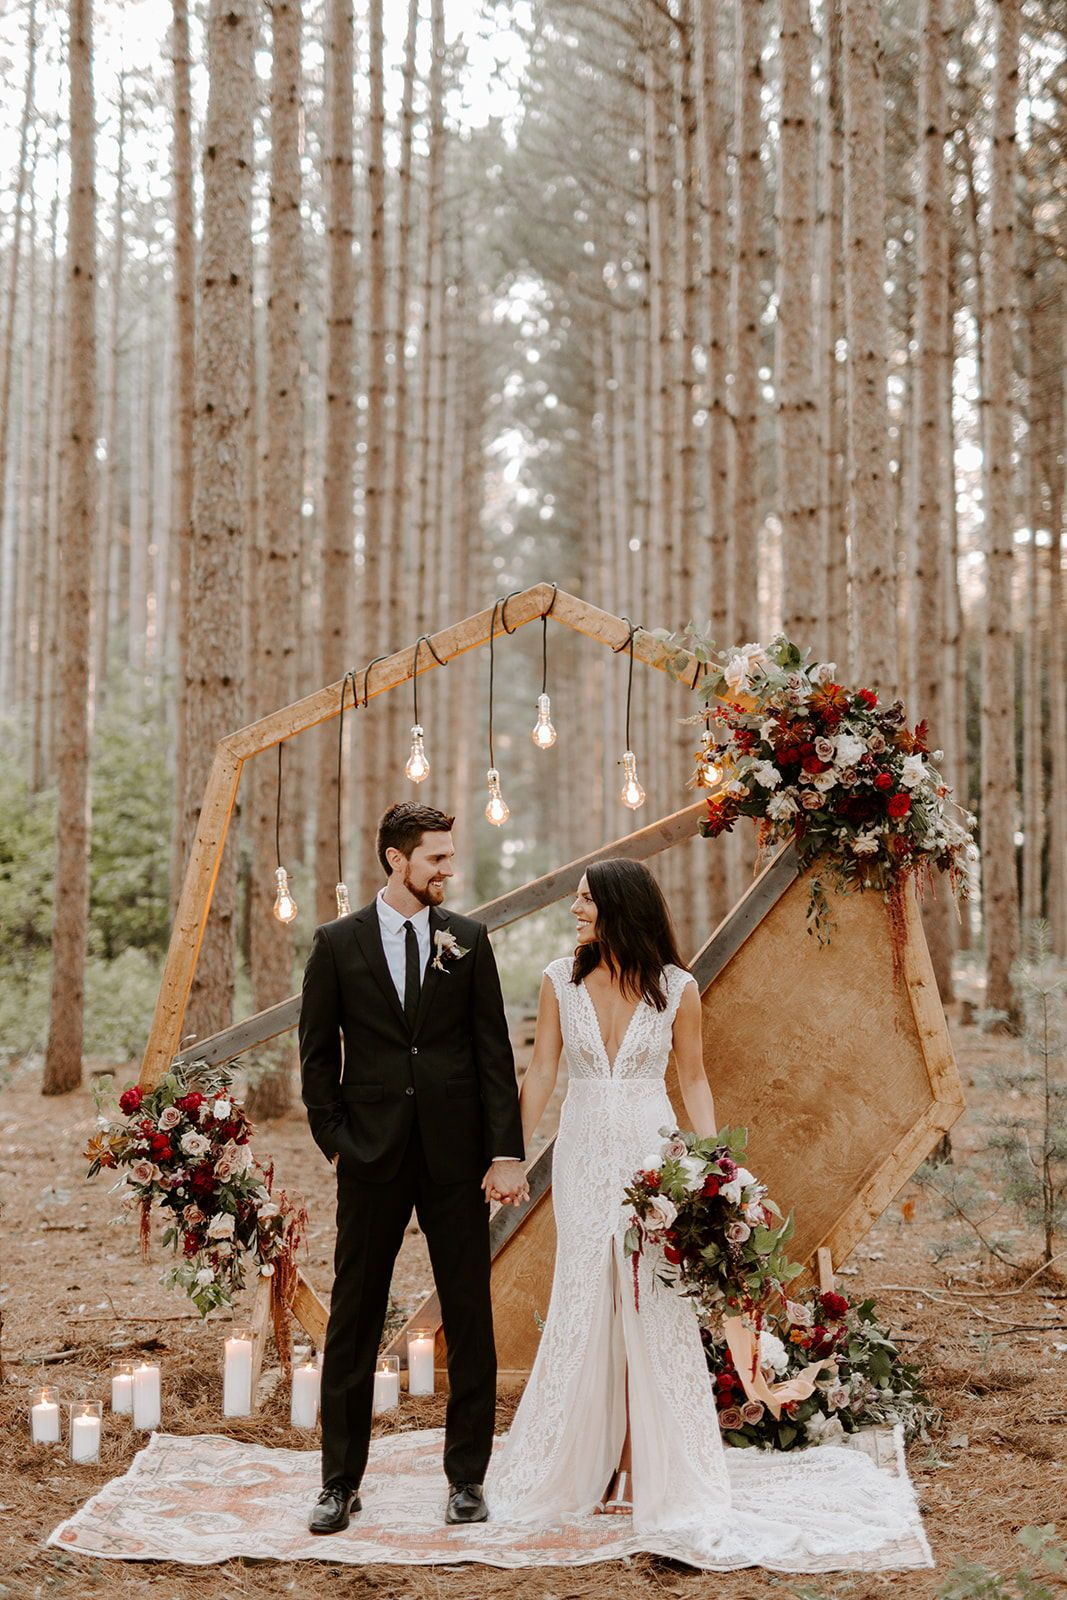 Intimate Wedding In The Woods Inspiration In